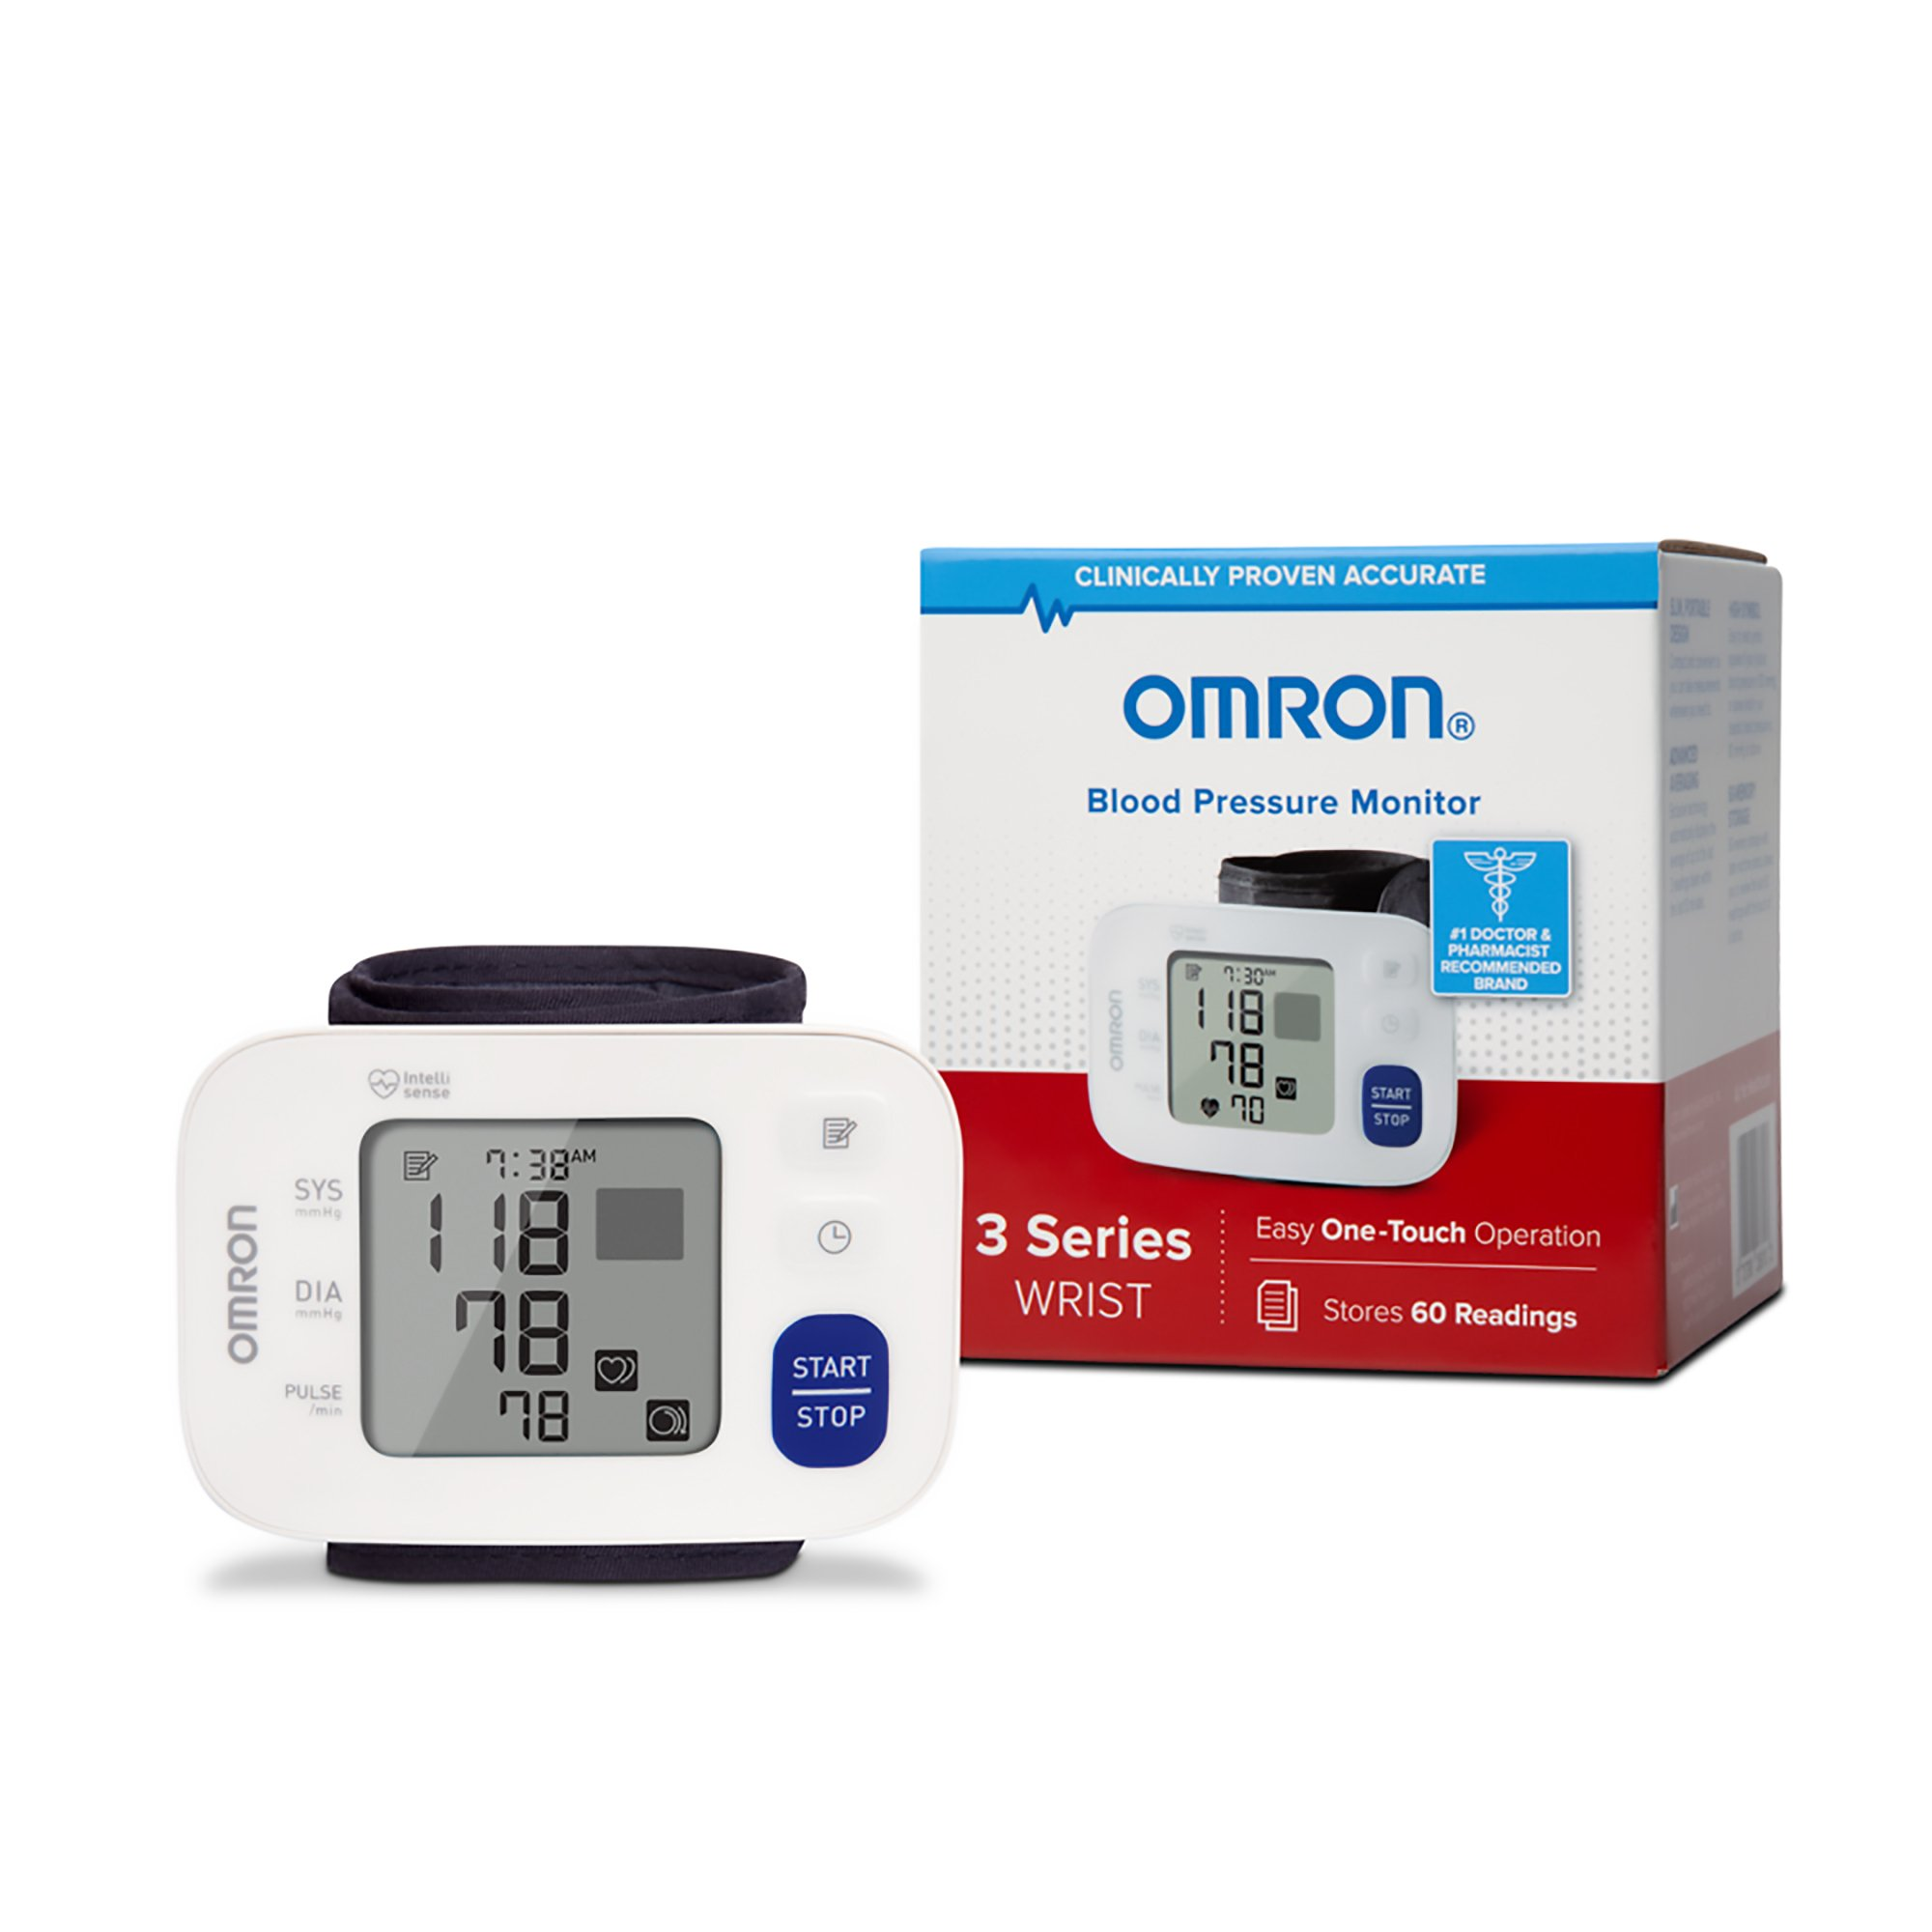 Omron Blood Pressure Monitor, 3 Series Wrist, Easy One-Touch Operation, BP6100, 1 Monitor